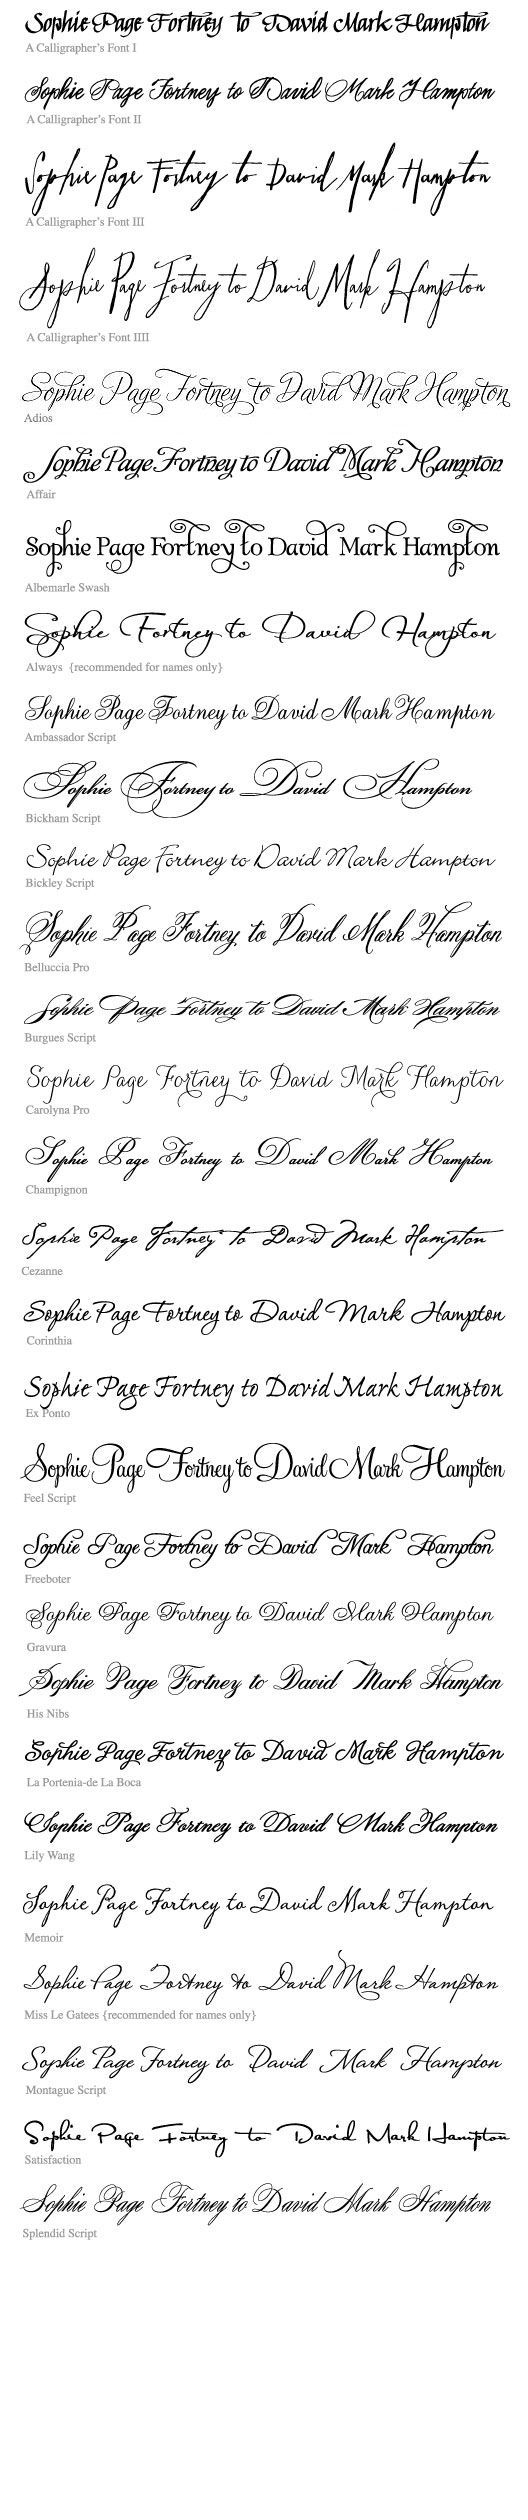 """Tattoo Fonts: """"I Love You To The Moon   & Back"""" in the font satisfaction = My dream tattoo."""